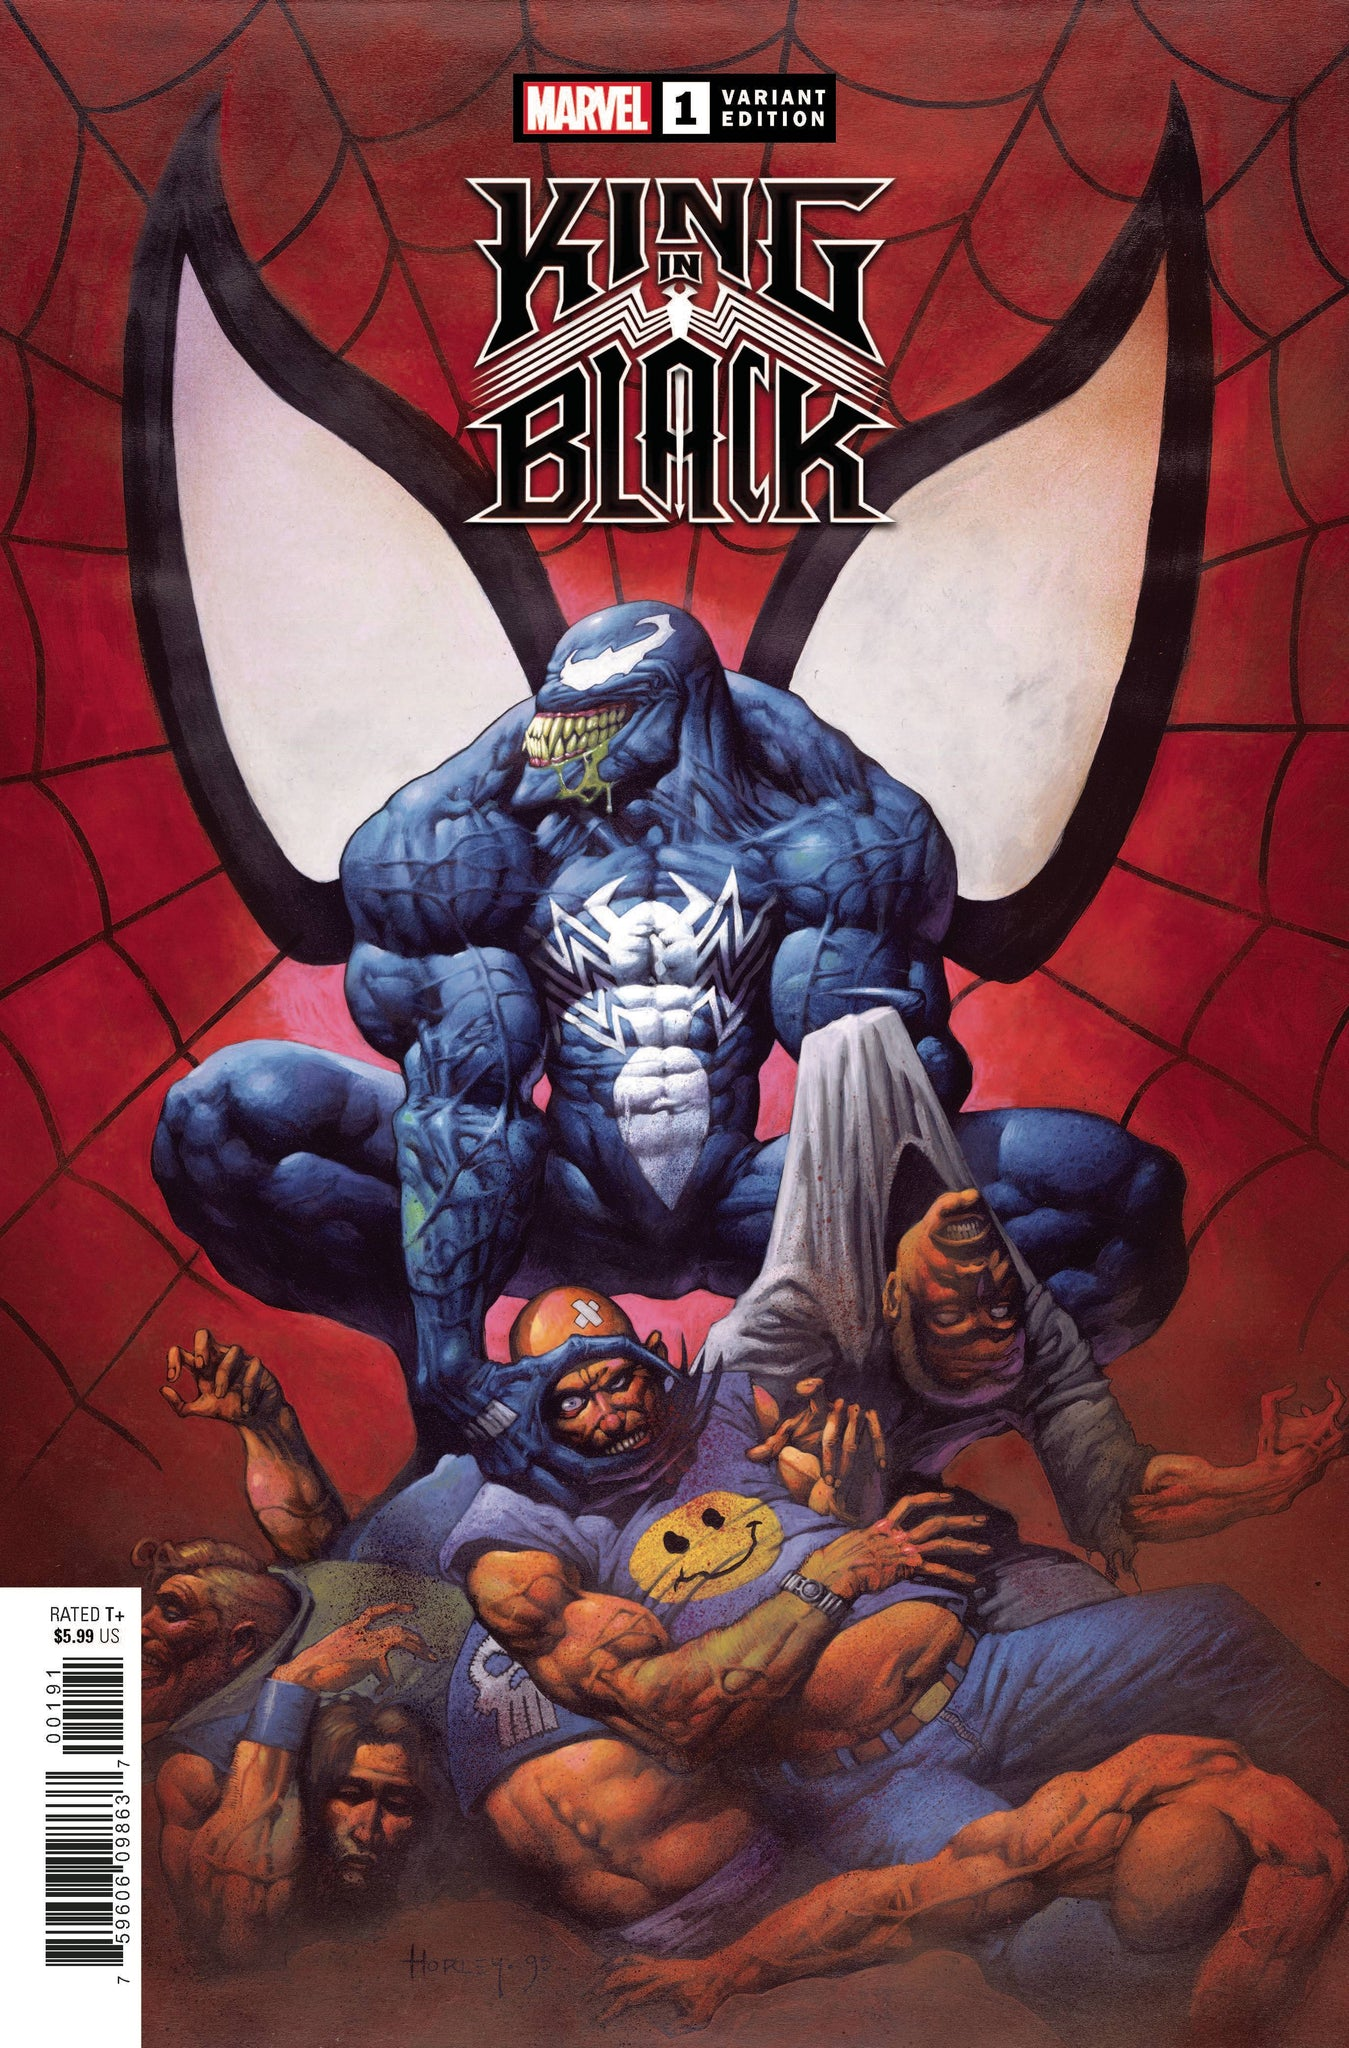 KING IN BLACK #1 HIDDEN GEM 1:100 VARIANT (12/02/2020)